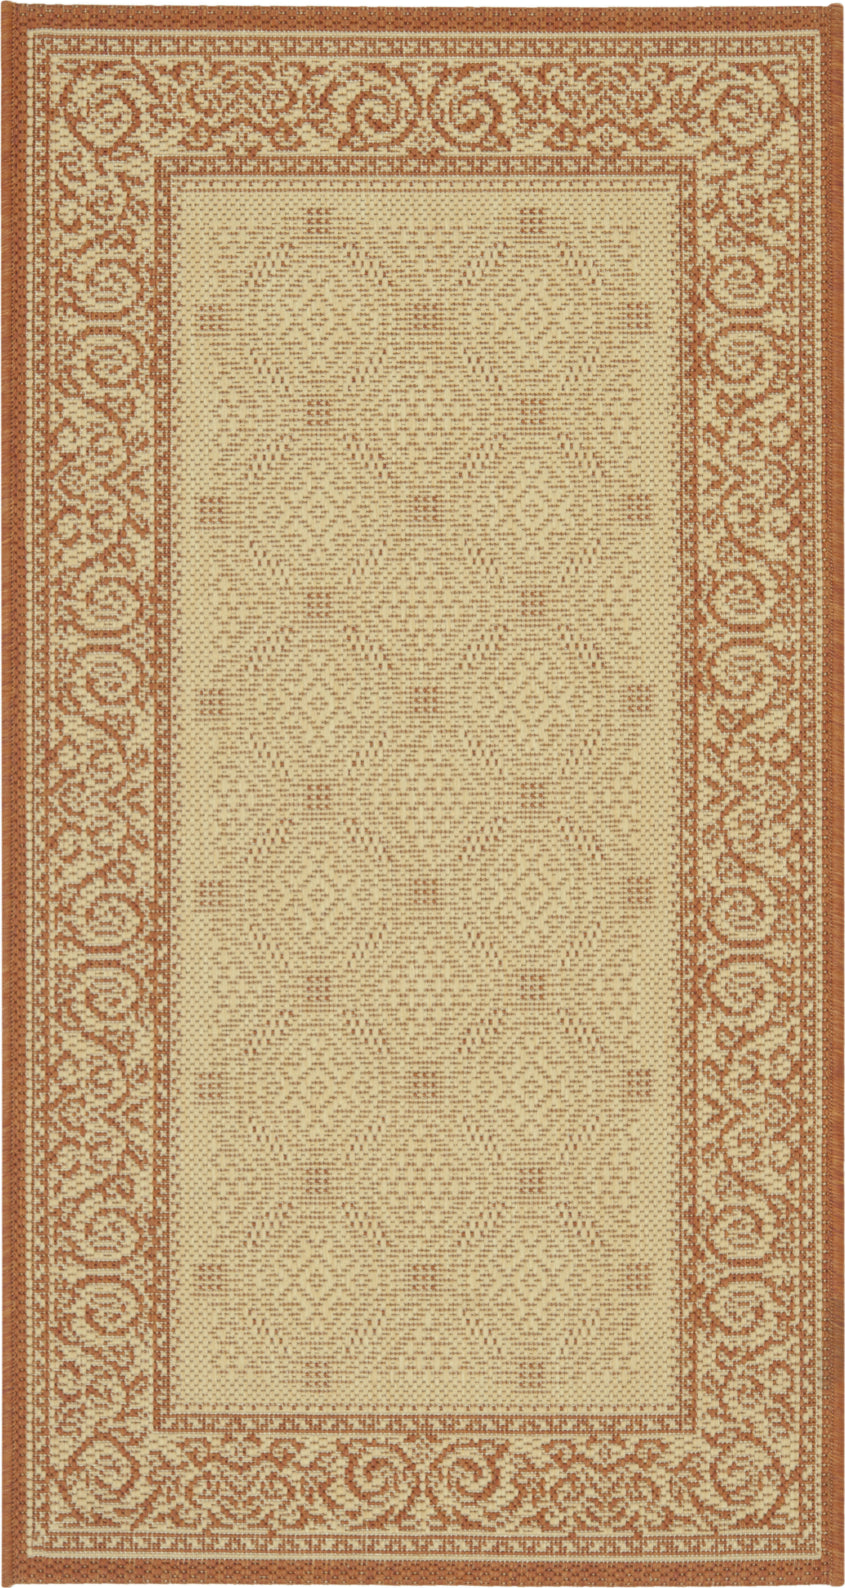 Safavieh Courtyard CY1502 Natural/Terra Area Rug main image